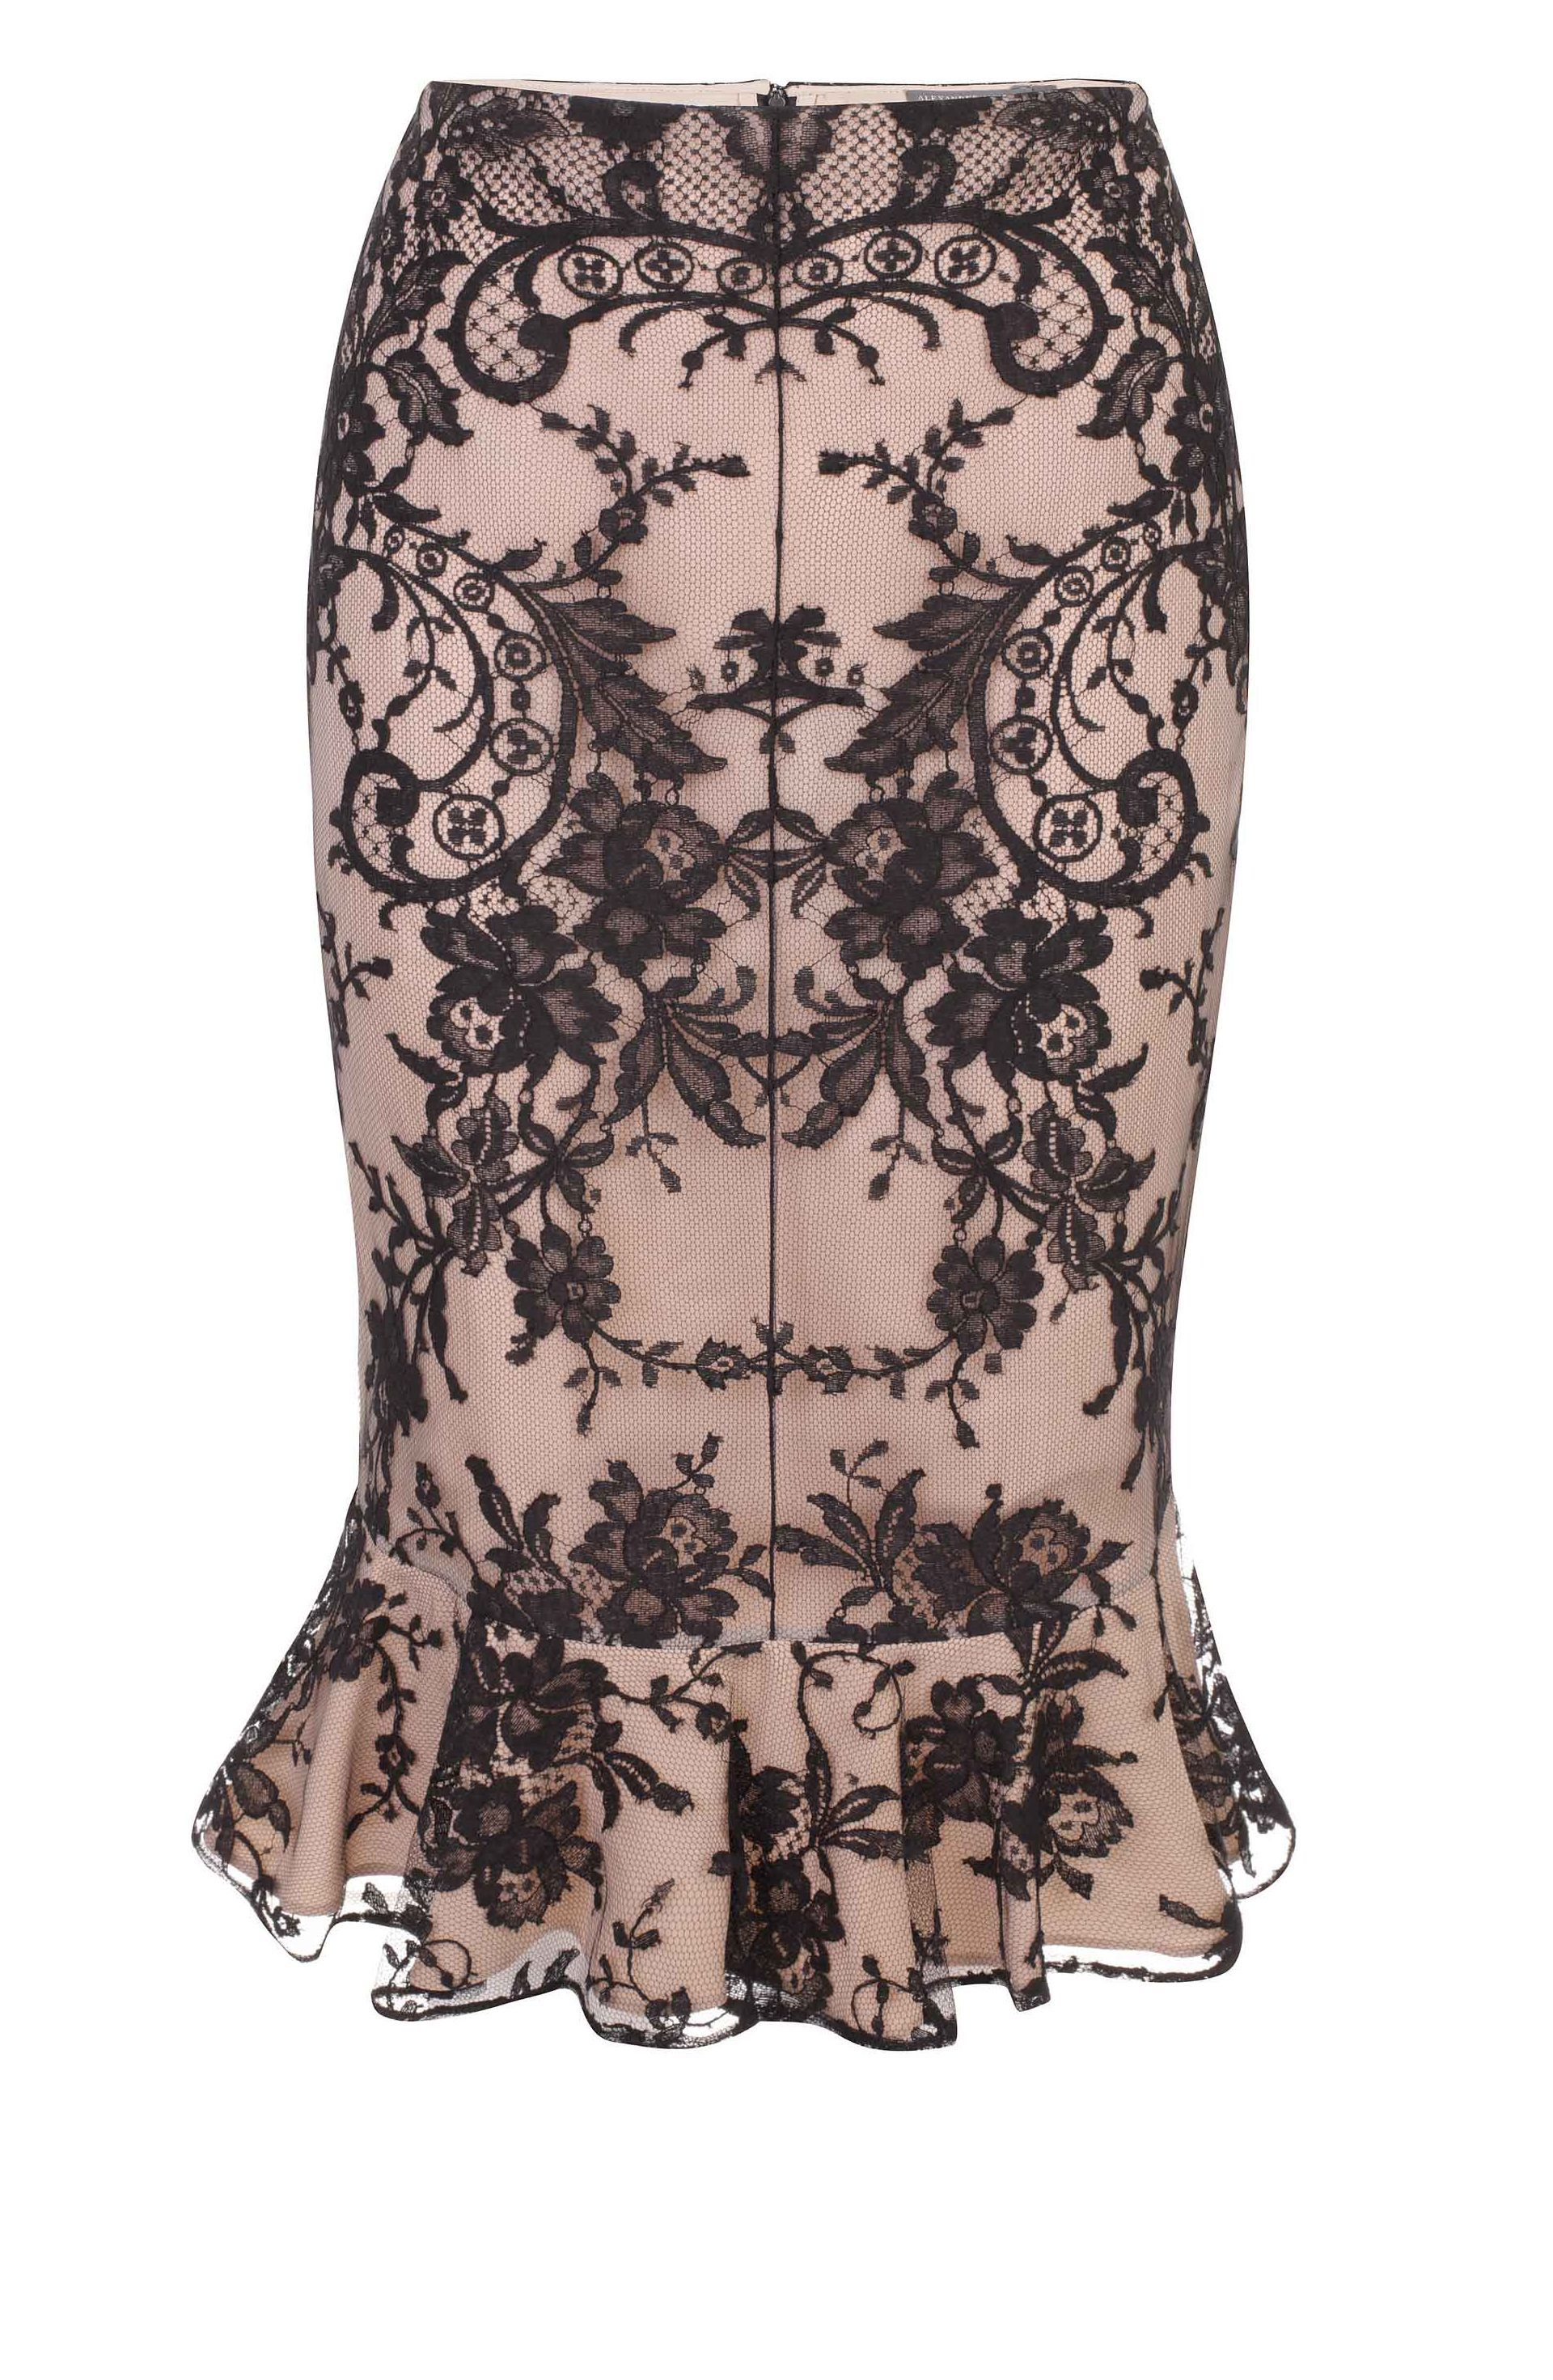 933e3a5823 Floral Lace Ruffle Detail Skirt black floral lace over flesh silk Alexander  McQueen